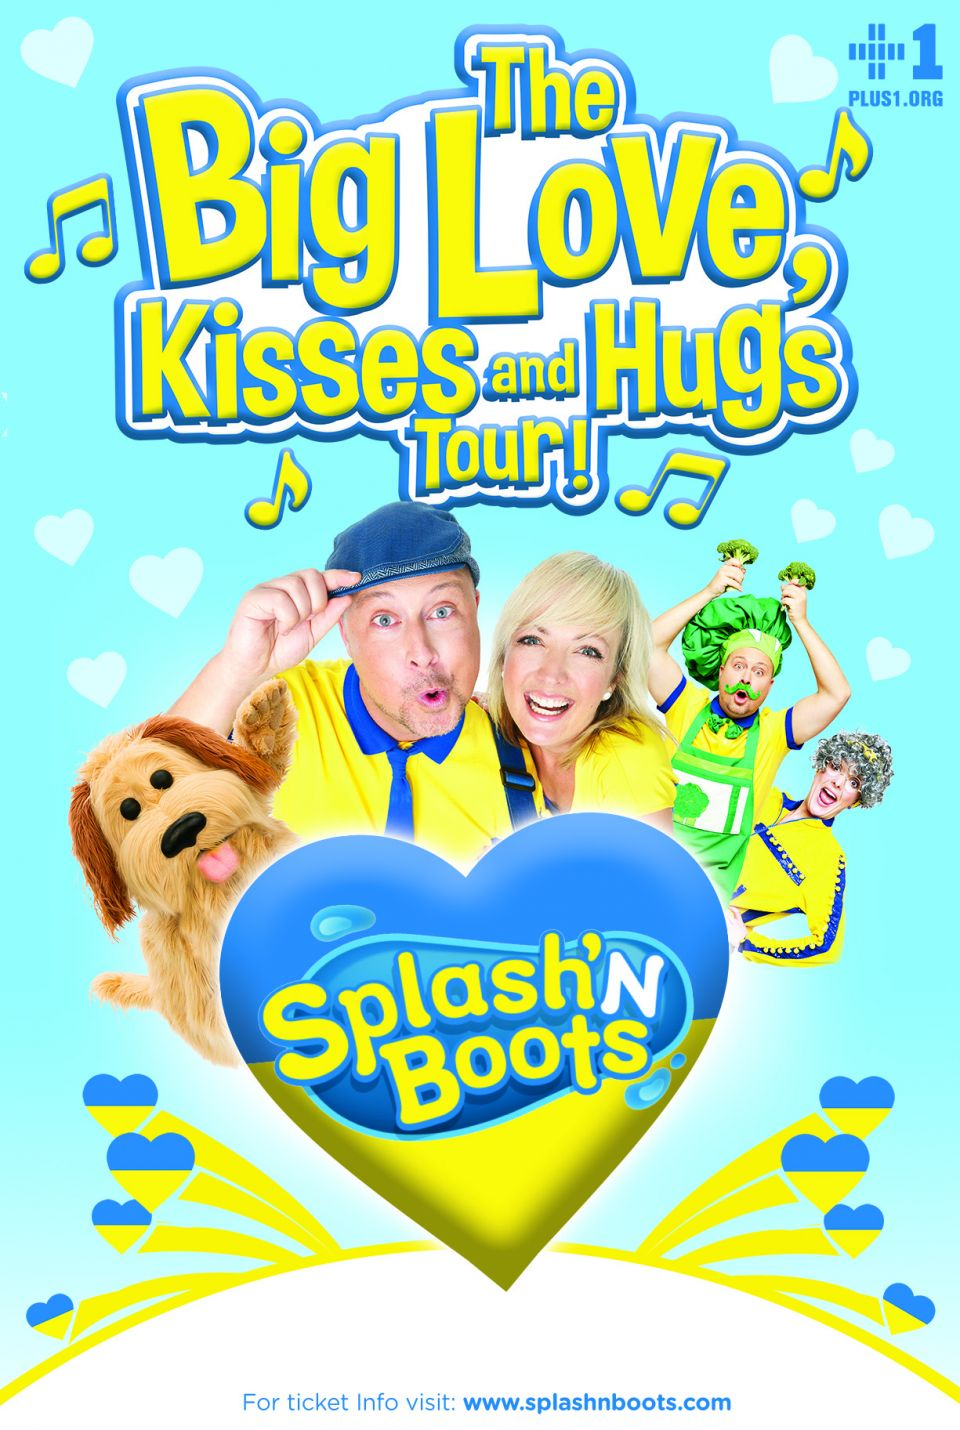 The Big Love, Kisses and Hugs Tour!